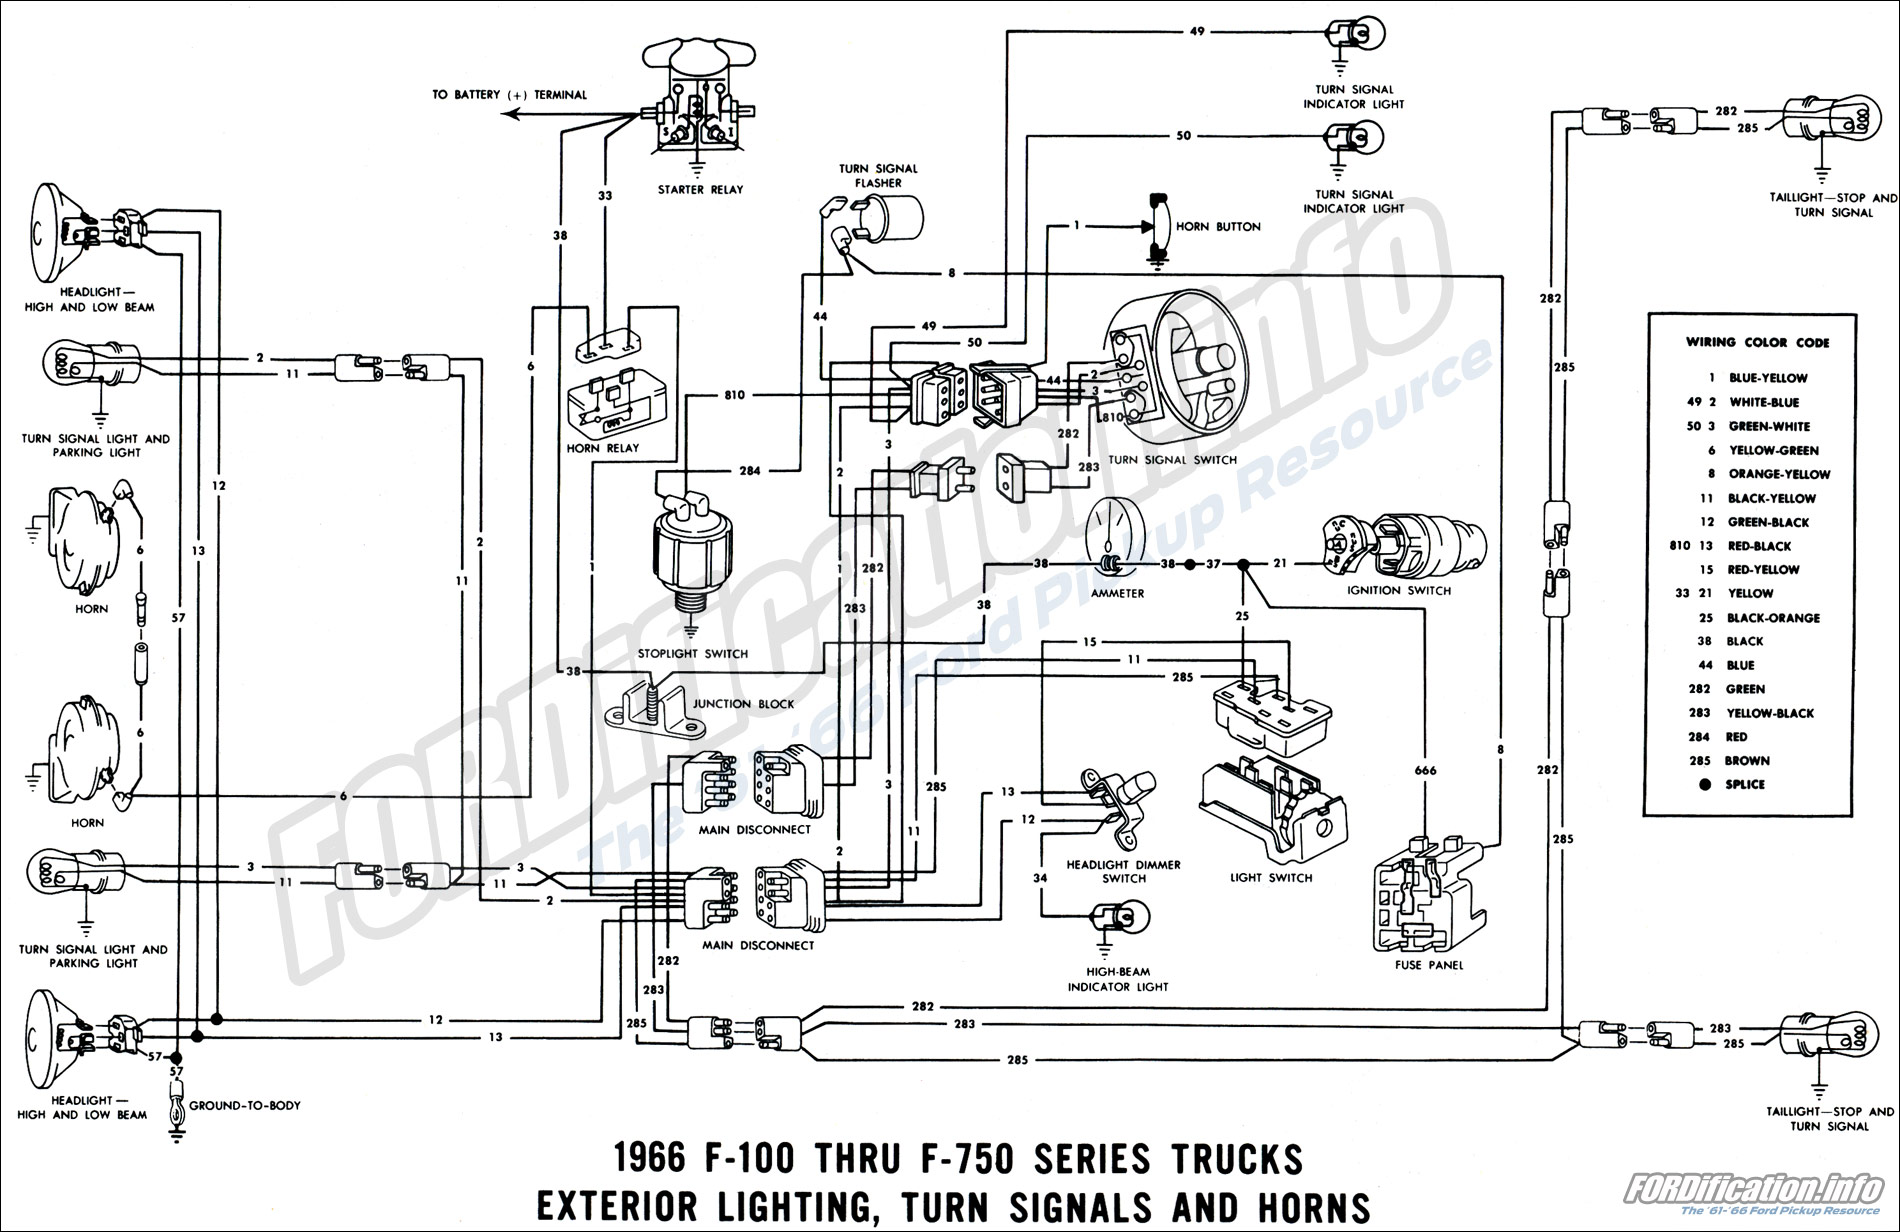 66extlight2s Wiring Diagram For Nova on ss for sale, ss blue, ss parts, ss hatchback, race car, ss black,